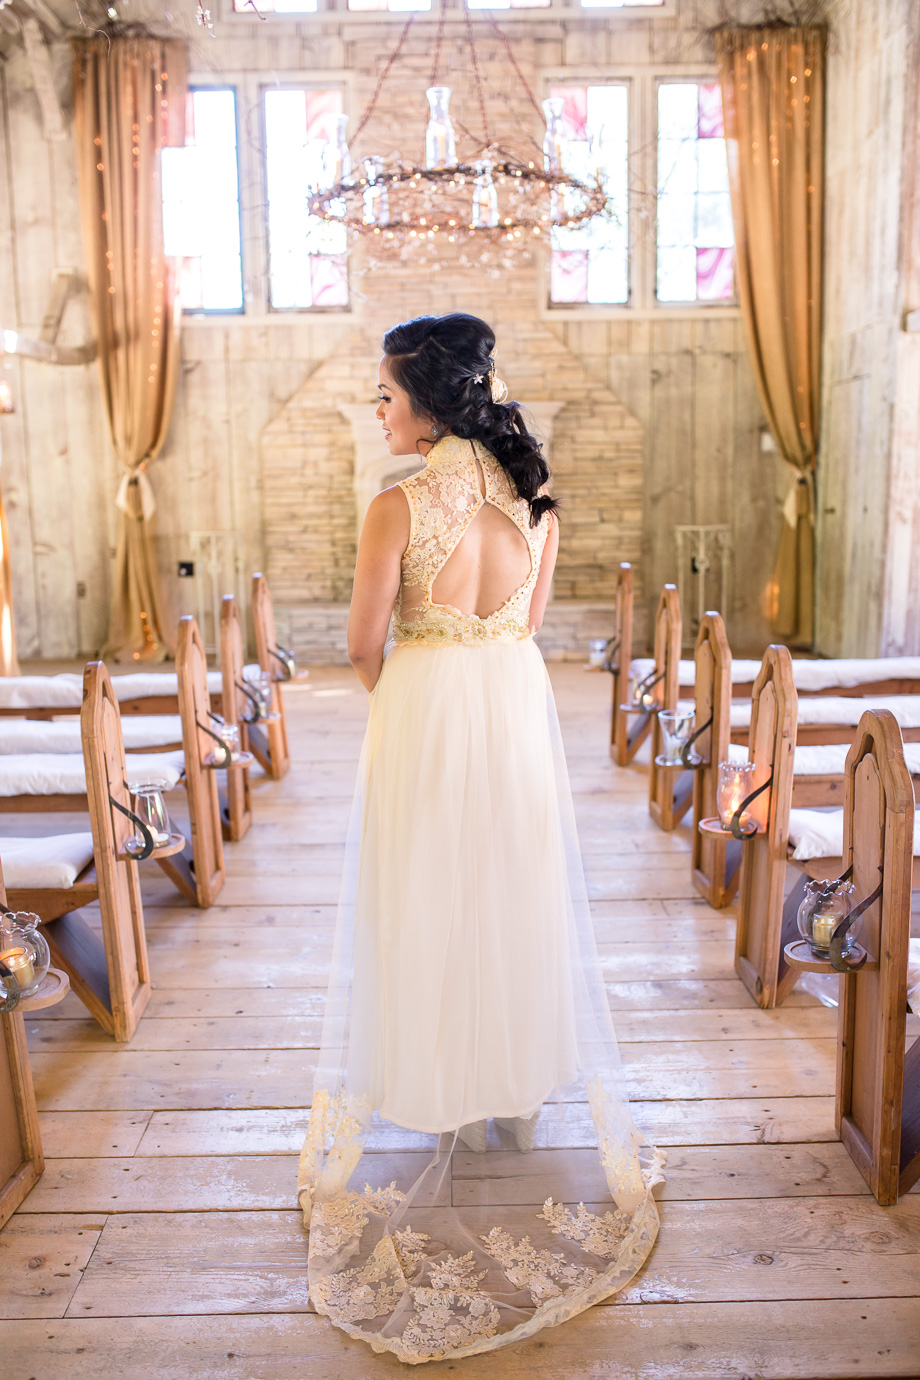 wedding at Union Hill Inn chapel - beautiful wedding dress with a lace train with Vietnamese gold accents, designed by bride herself